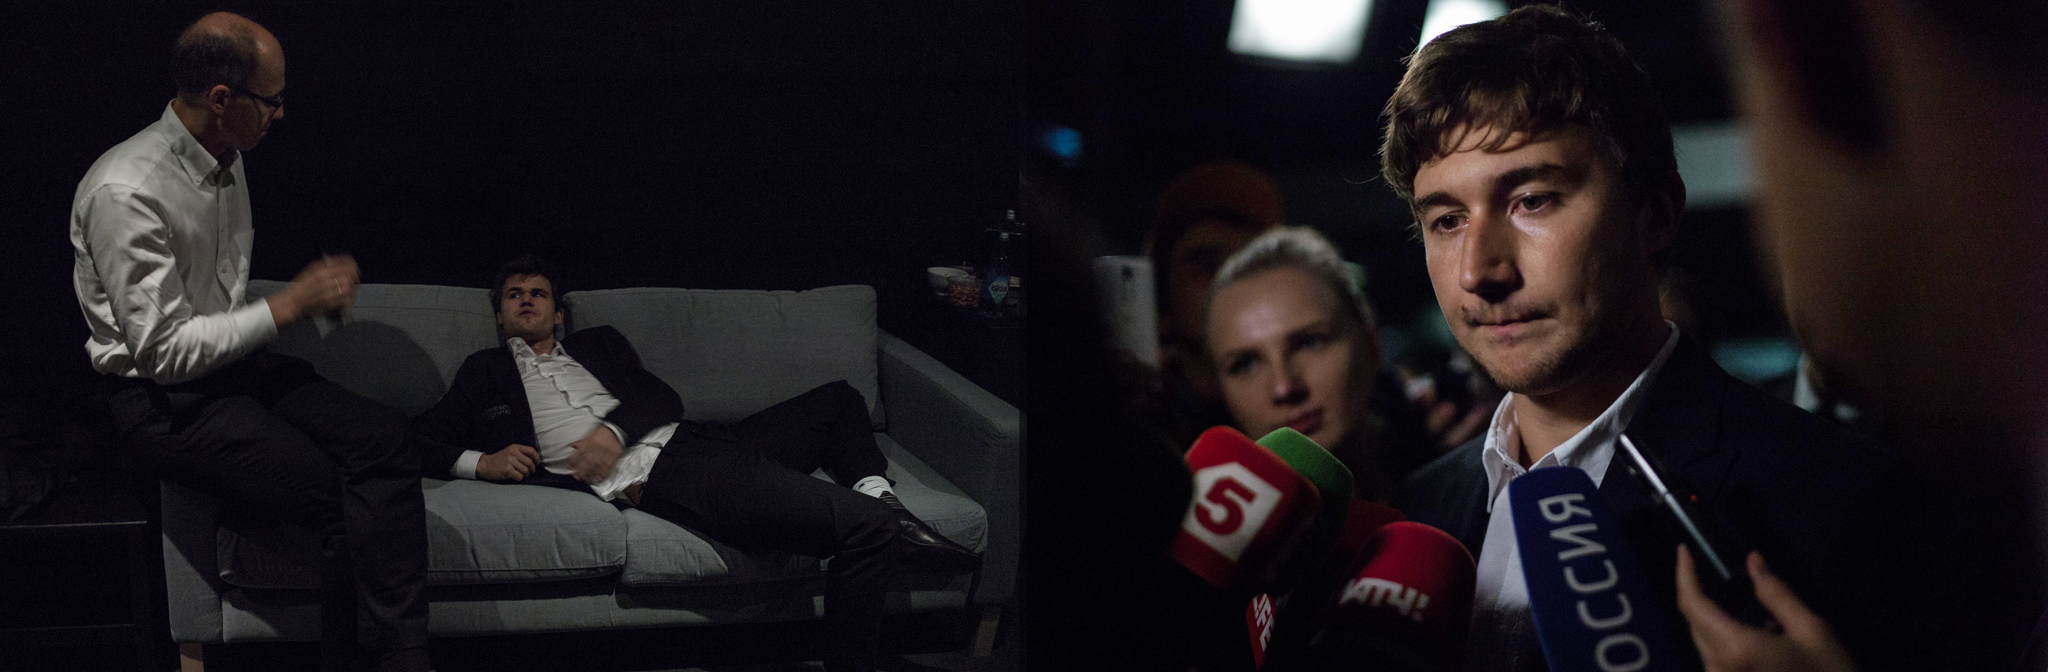 Left: While waiting for the title ceremony, Magnus Carlsen is finally able to relax with his father by his side. Right: Following his defeat, Karjakin was clearly disappointed while speaking to the Russian media. He confirmed rumors about travelling to New York with a Virgin Mary icon.